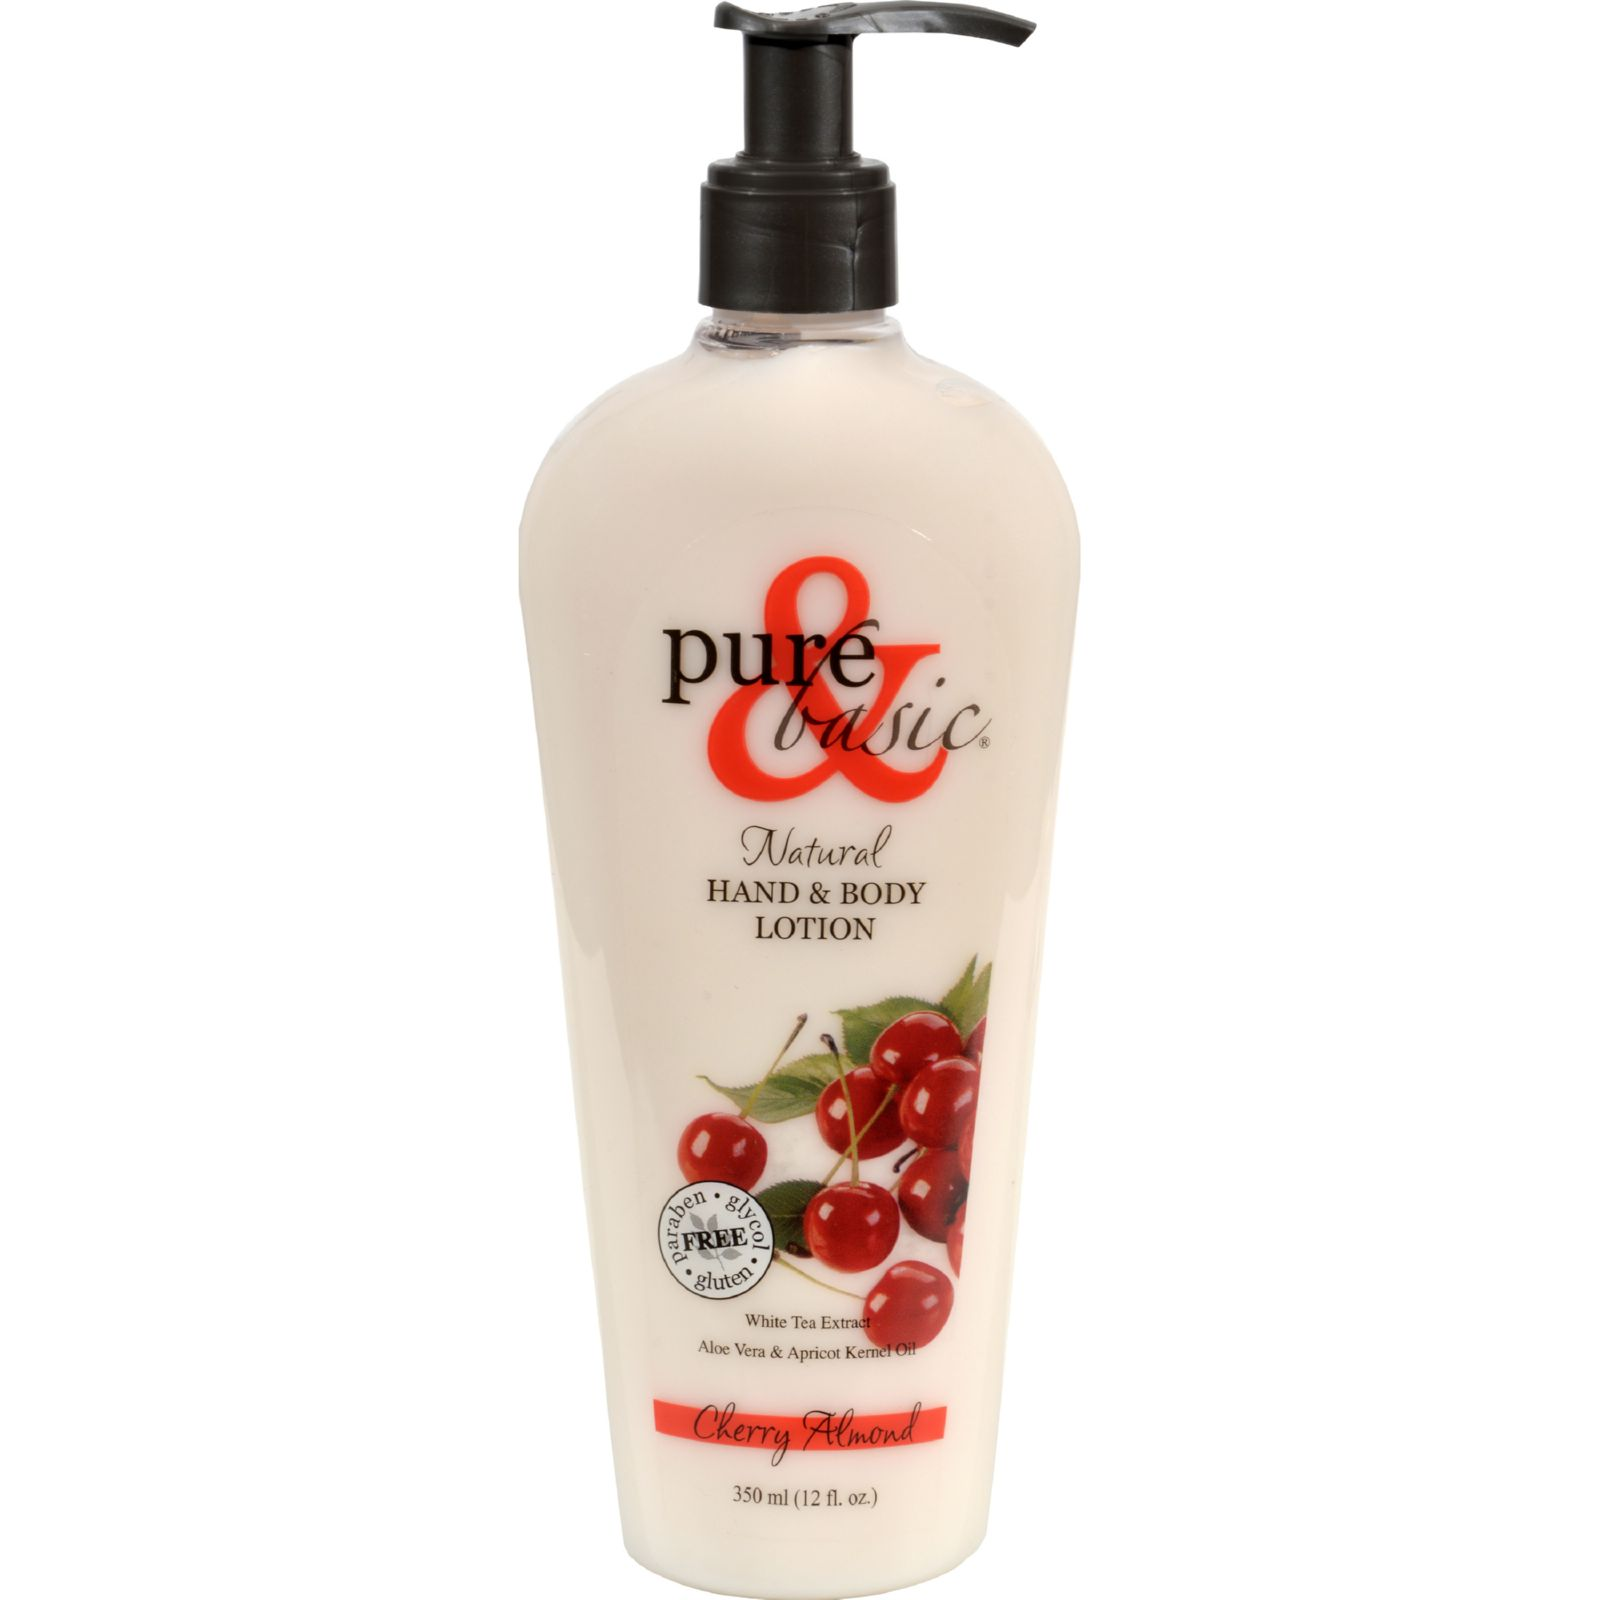 Pure and Basic Natural Bath And Body Lotion Cherry Almond - 12 fl oz